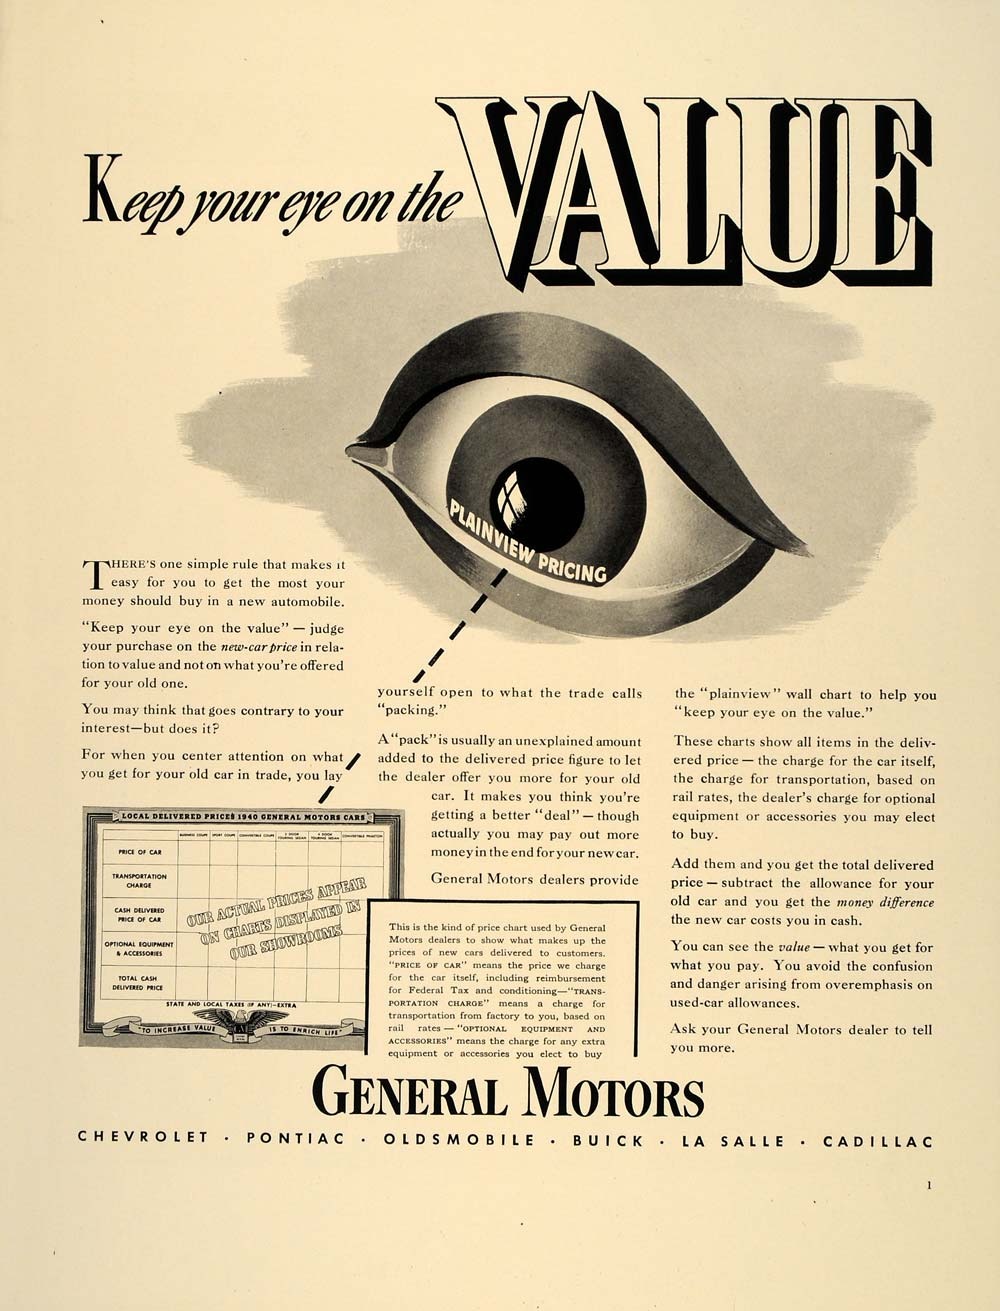 1940 Ad General Motors GM Plainview Pricing Cars Eye - ORIGINAL ADVERTISING FT8